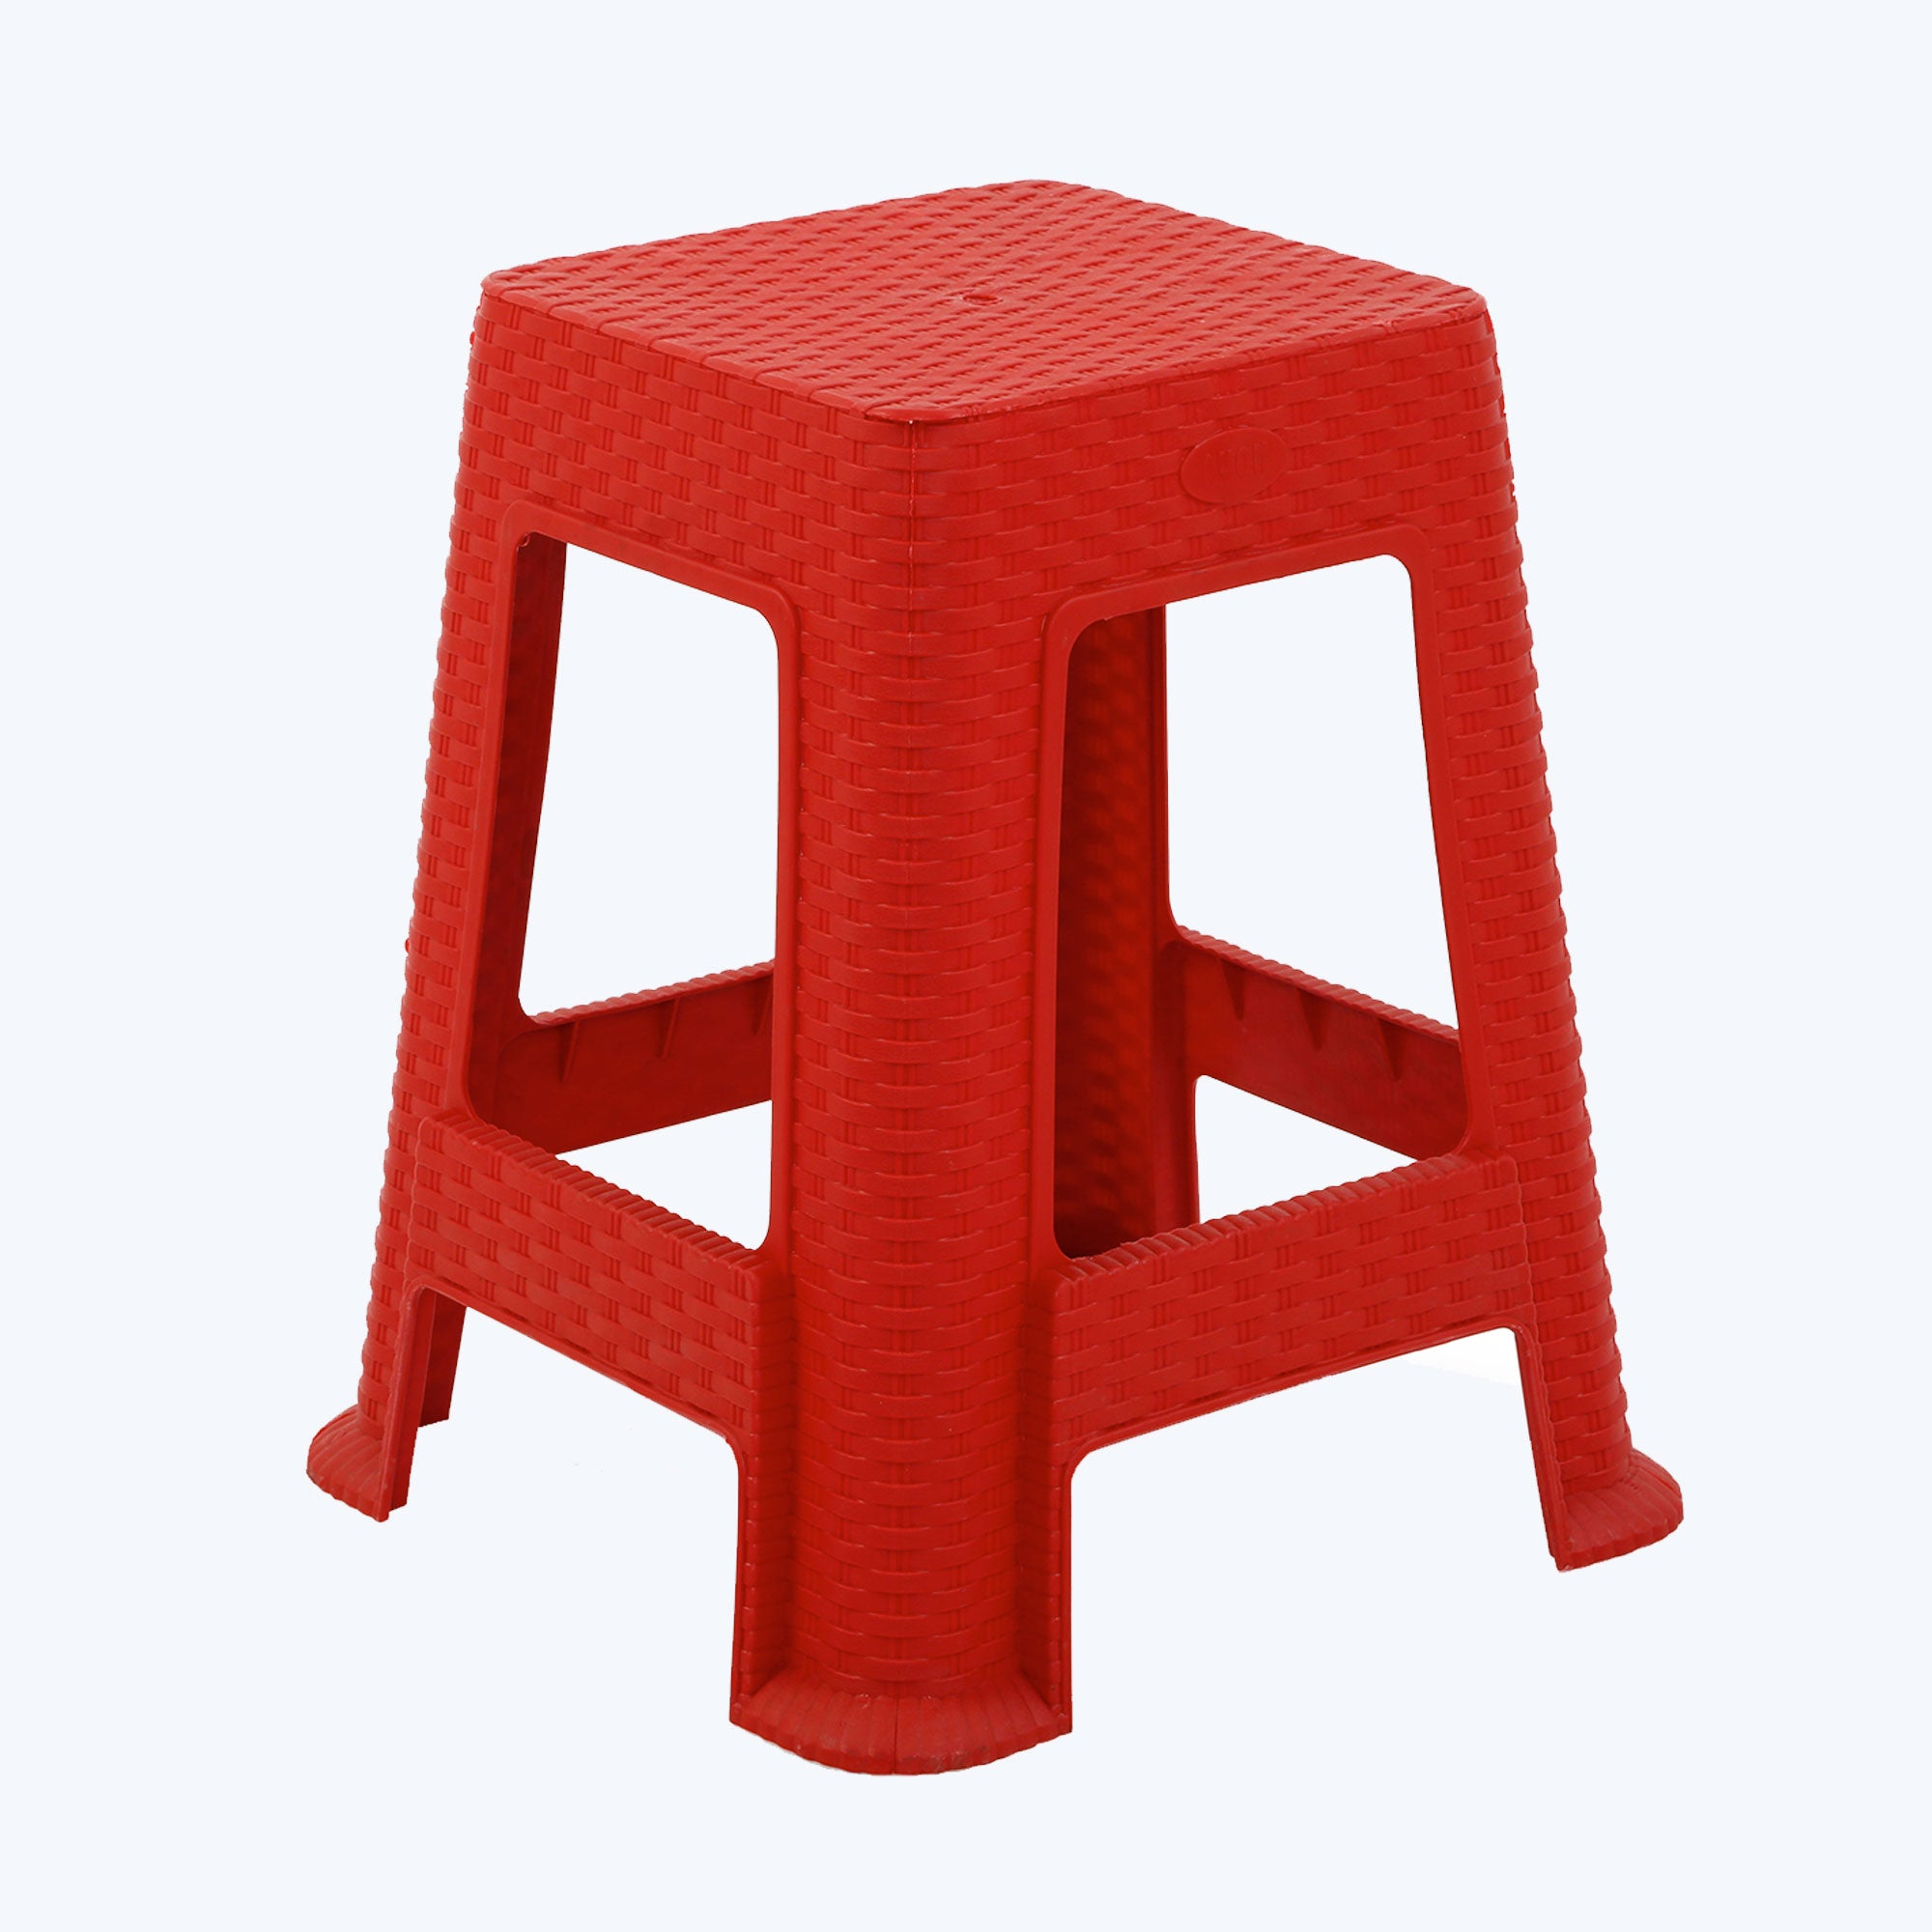 Buy Plastic Stool